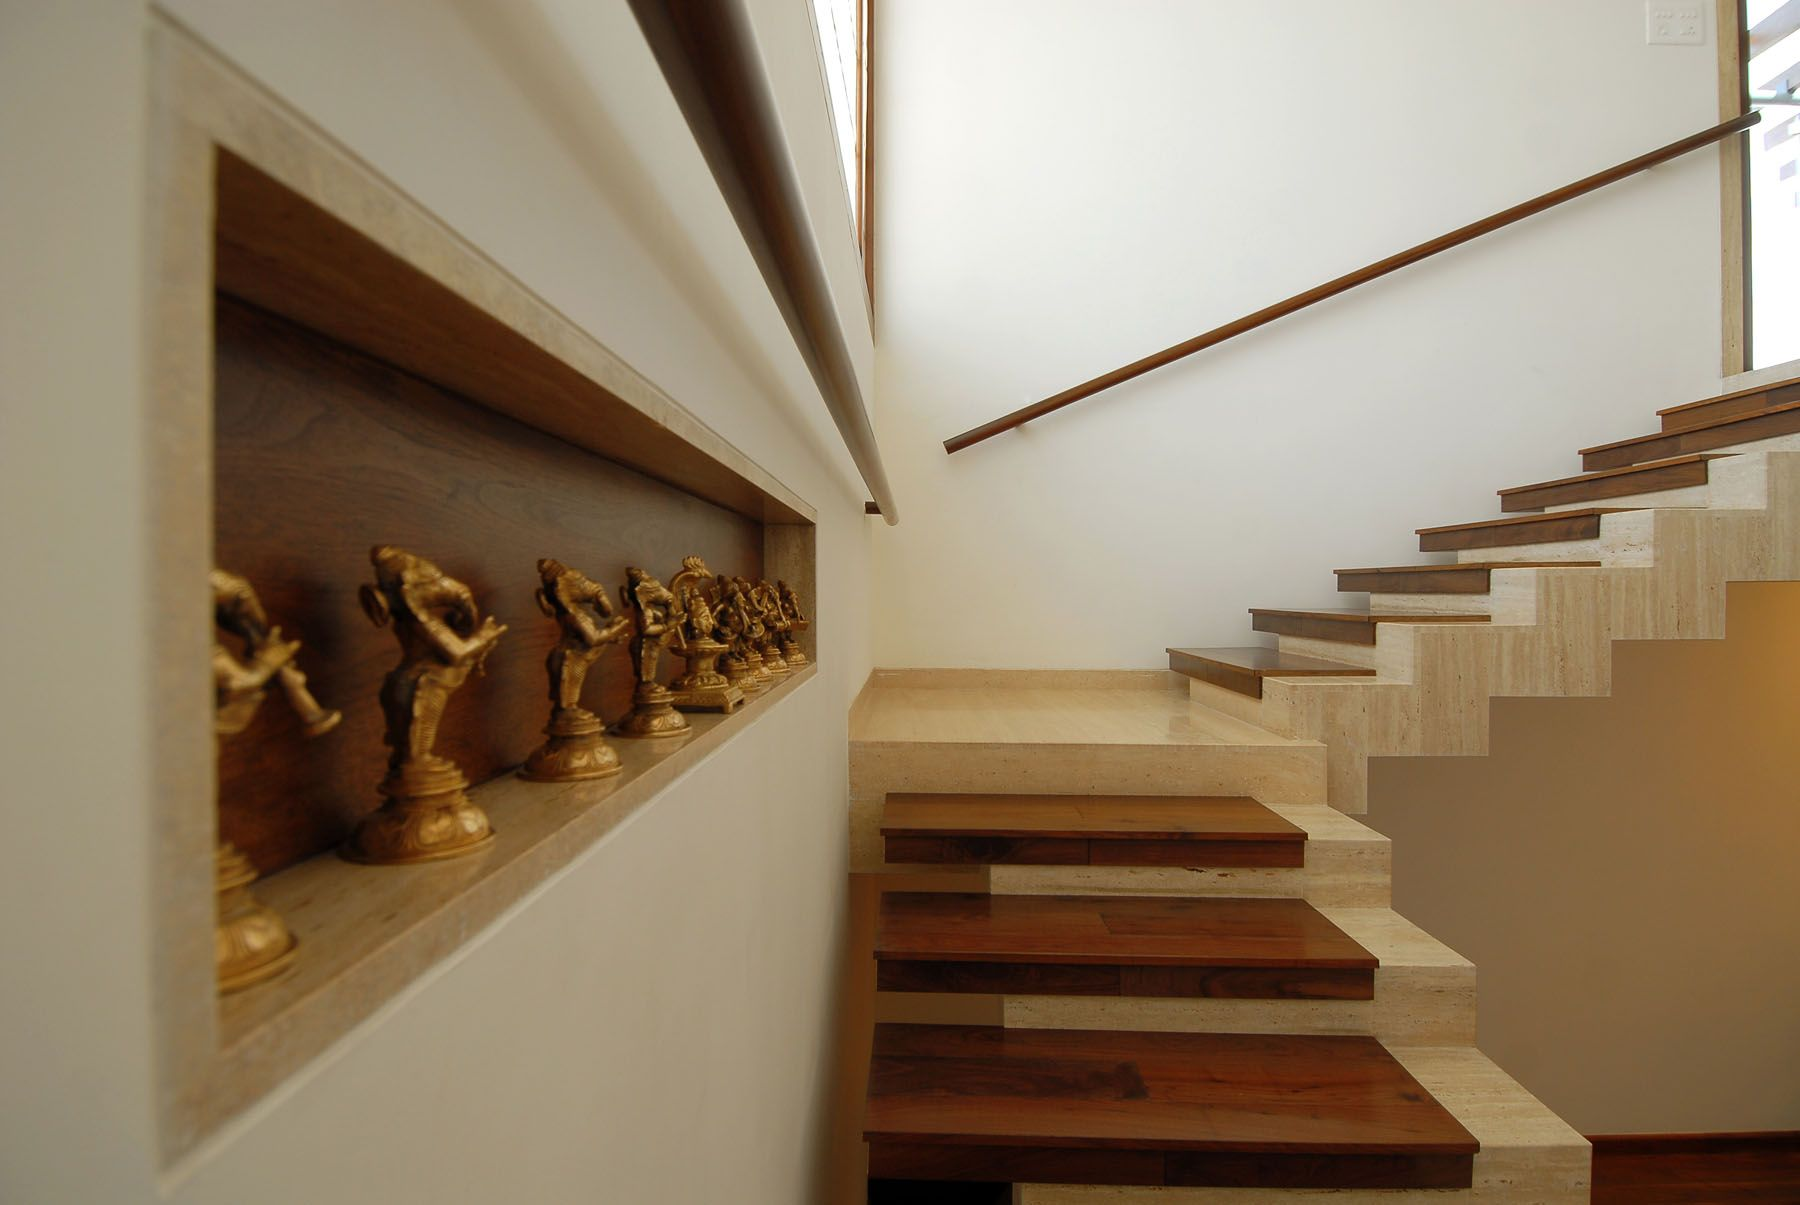 Duplex house interior design stairs pinned by for Duplex house interior designs photos